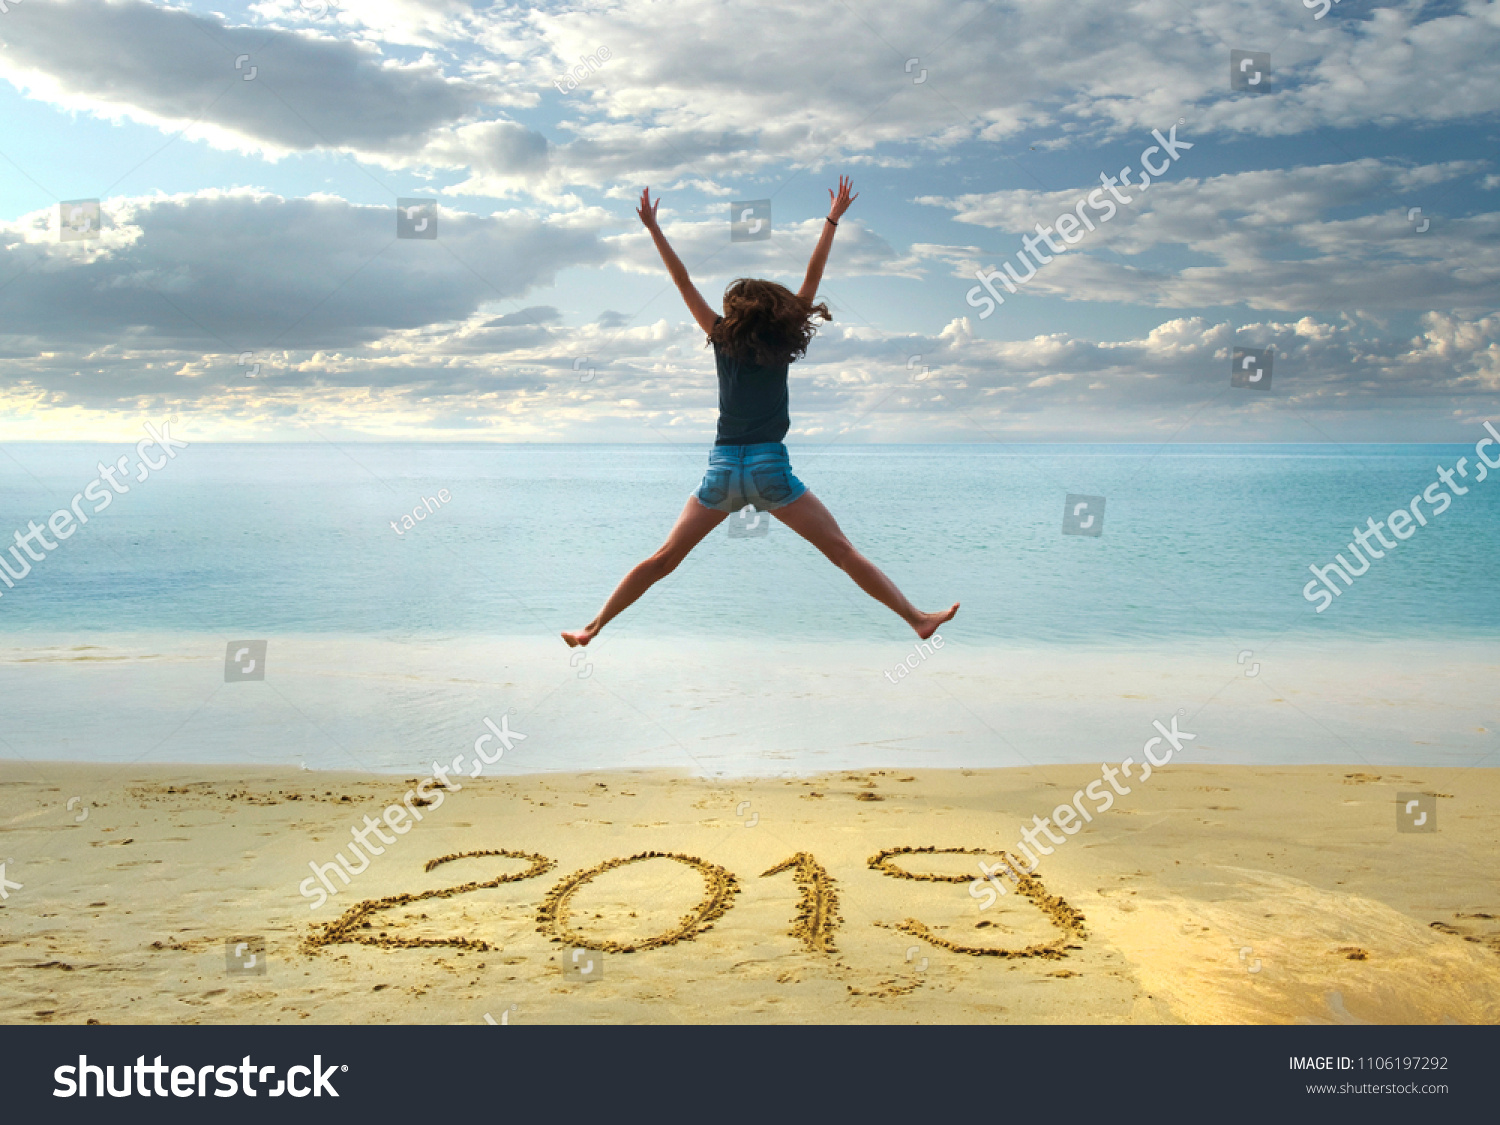 New Year 2019 on the sand,happy girl with hands up jumping on the beach #1106197292